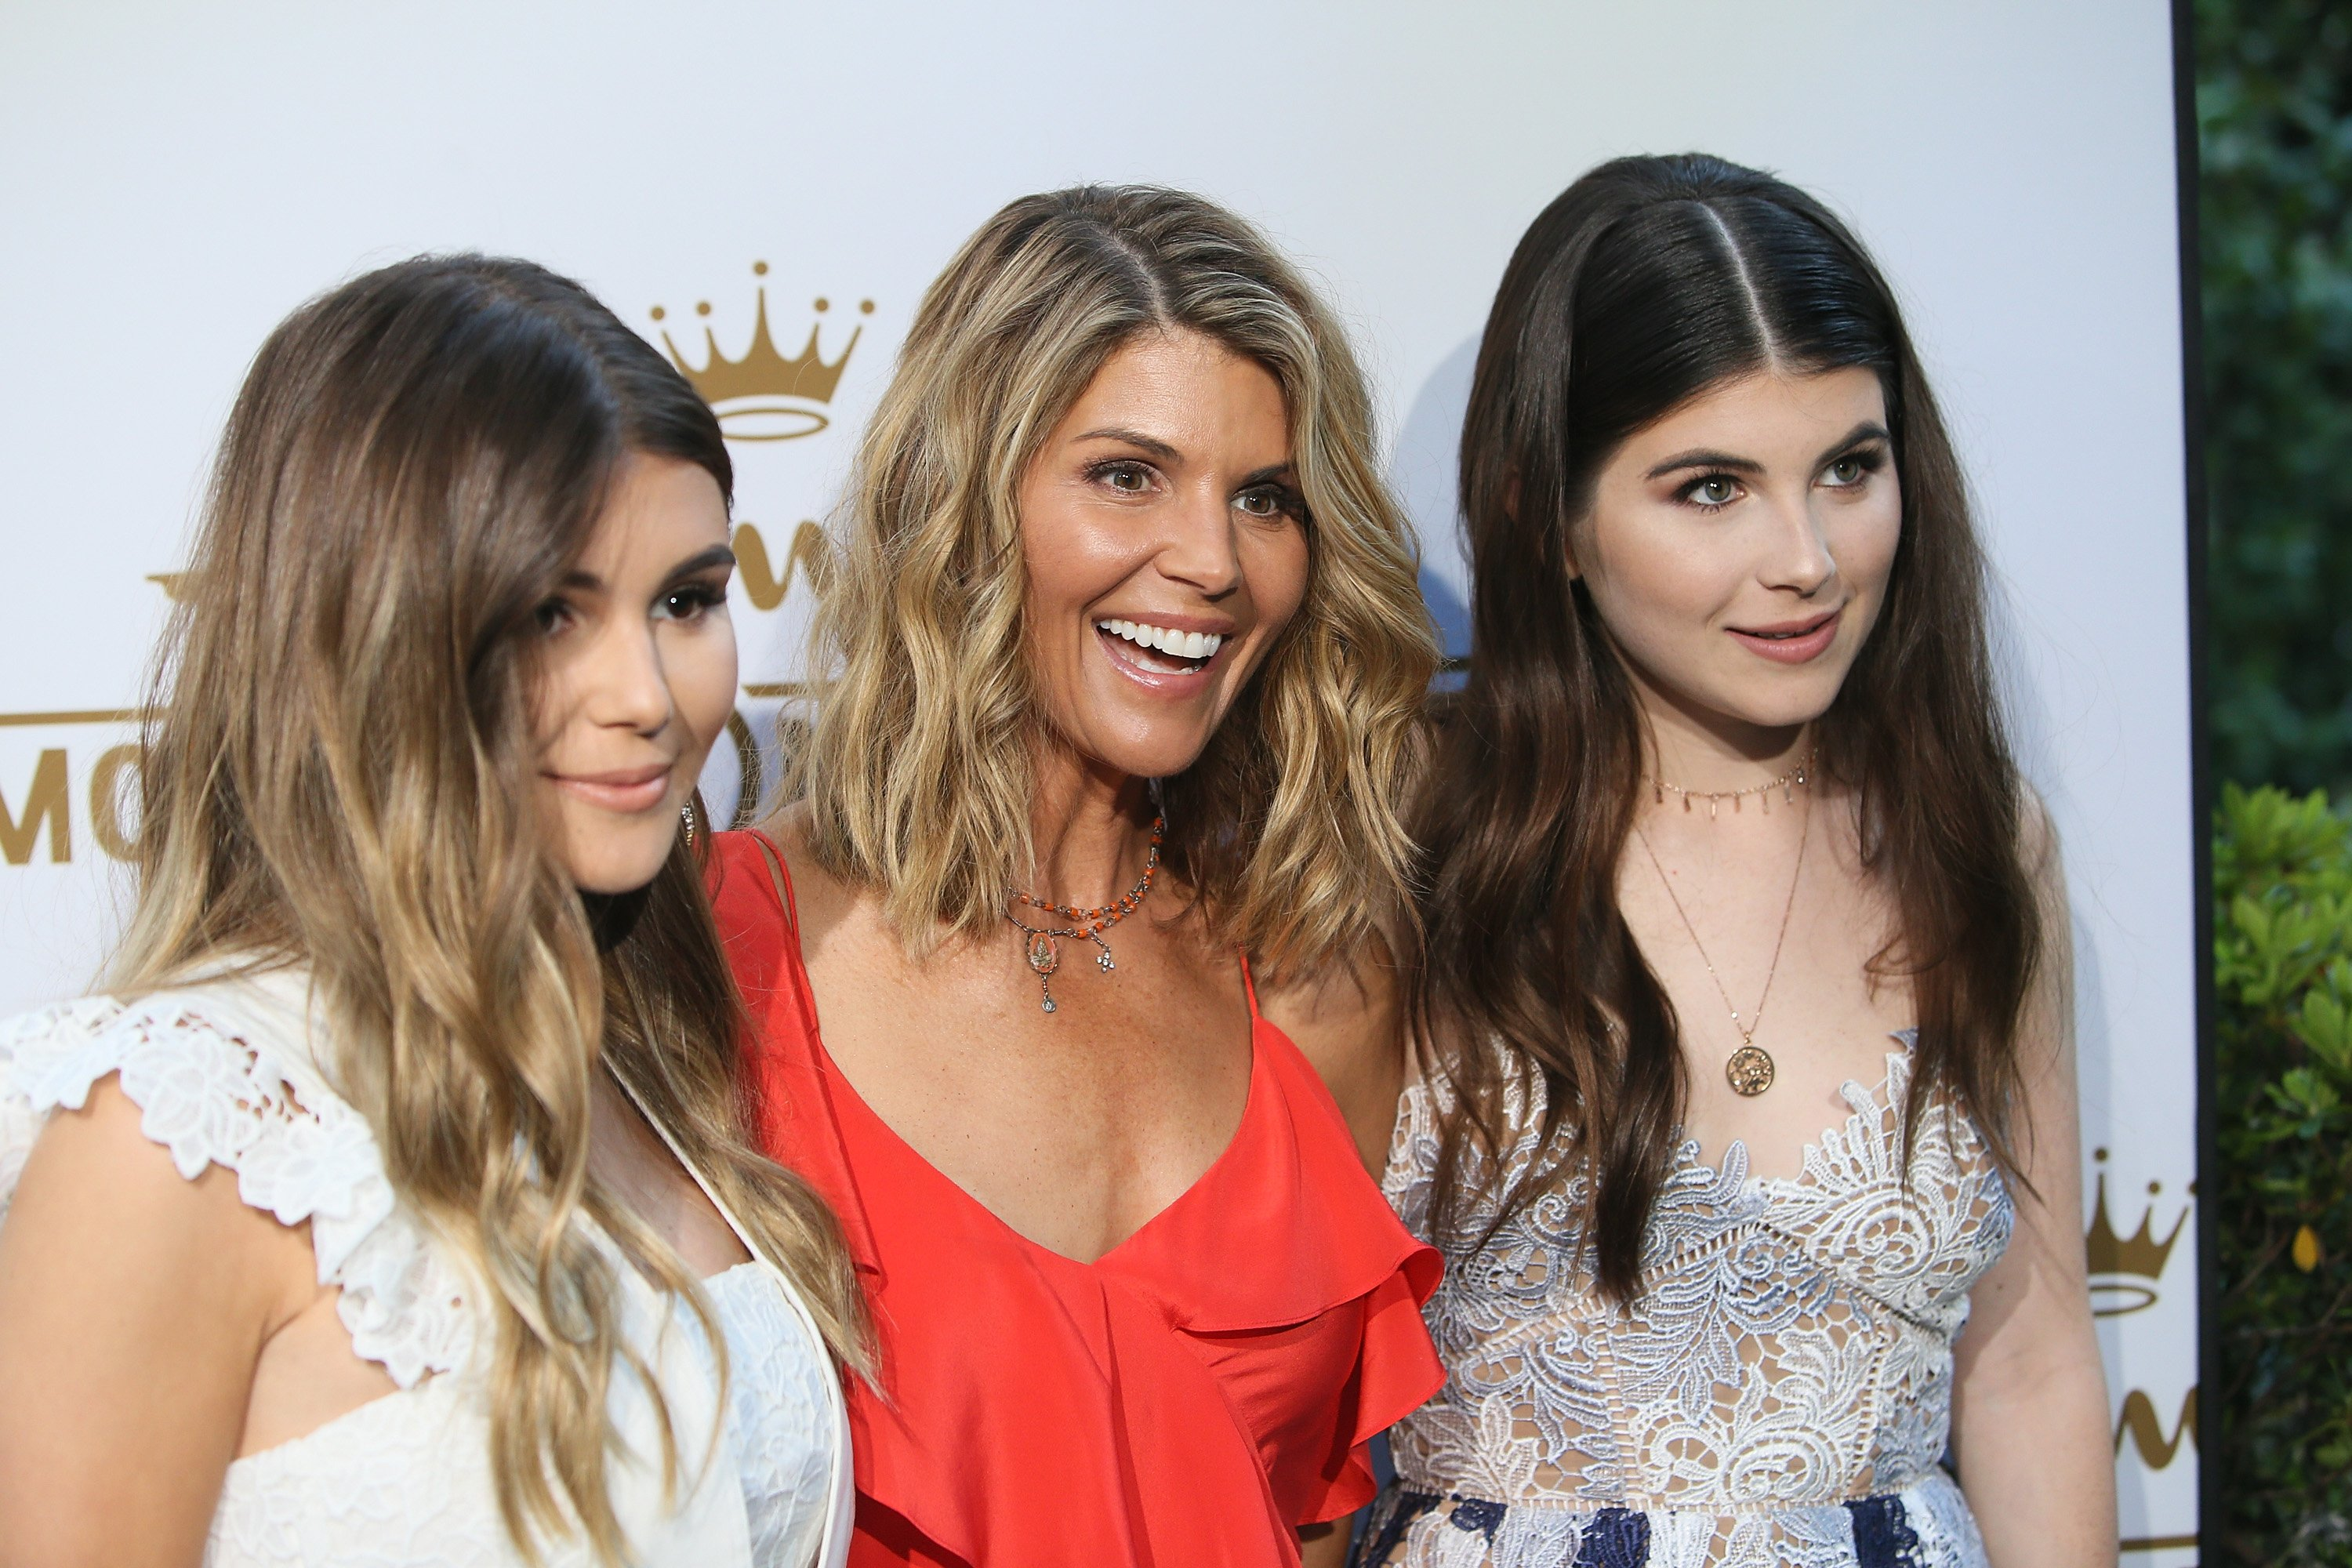 Lori Loughlin, Isabella Rose and Olivia Jade Giannulli attend the Hallmark Channel Summer TCA Tour on July 27, 2017, in Beverly Hills, California. | Source: Getty Images.